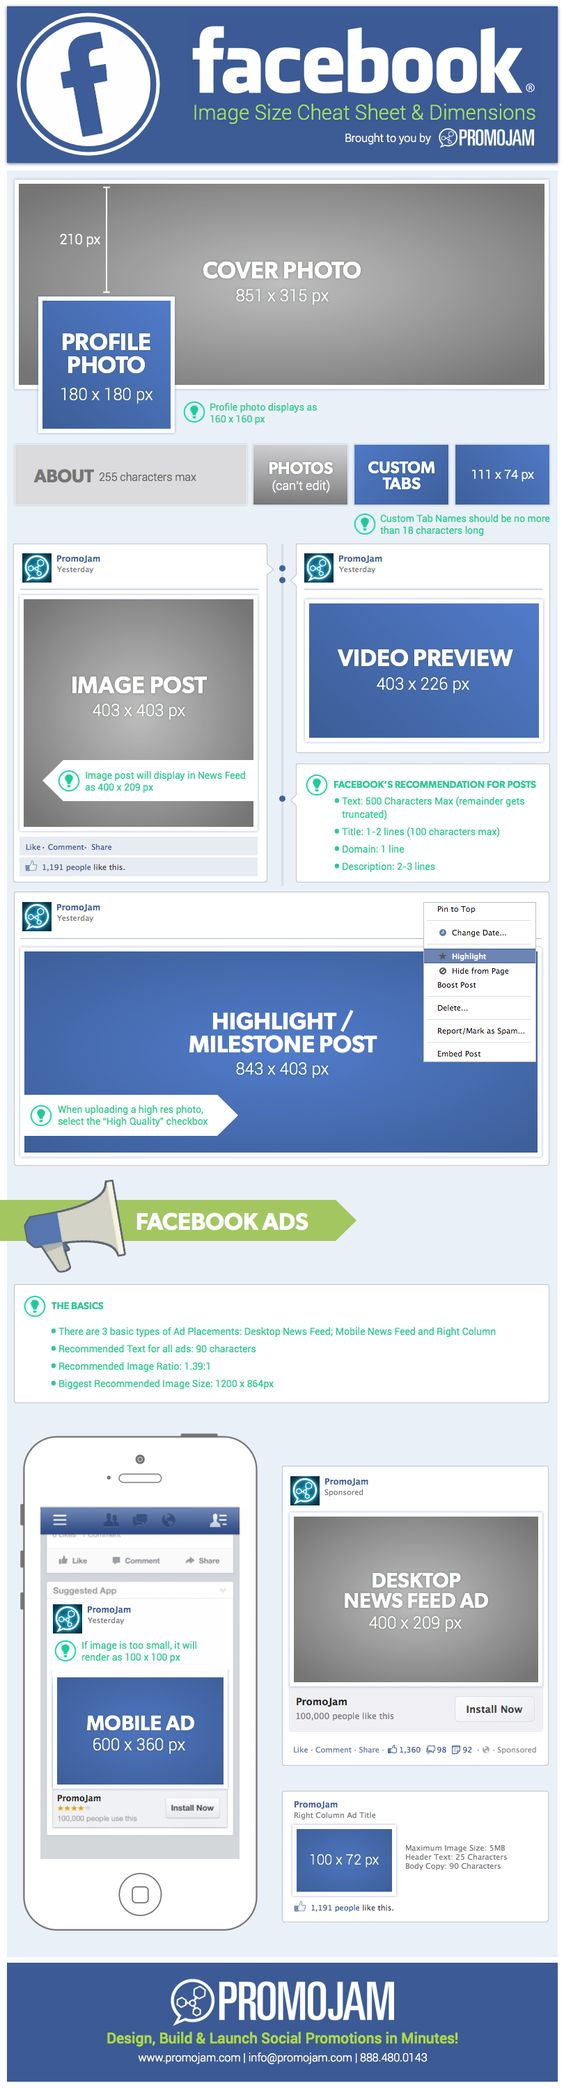 #Facebook Image Sizes Cheat Sheet - #infographic